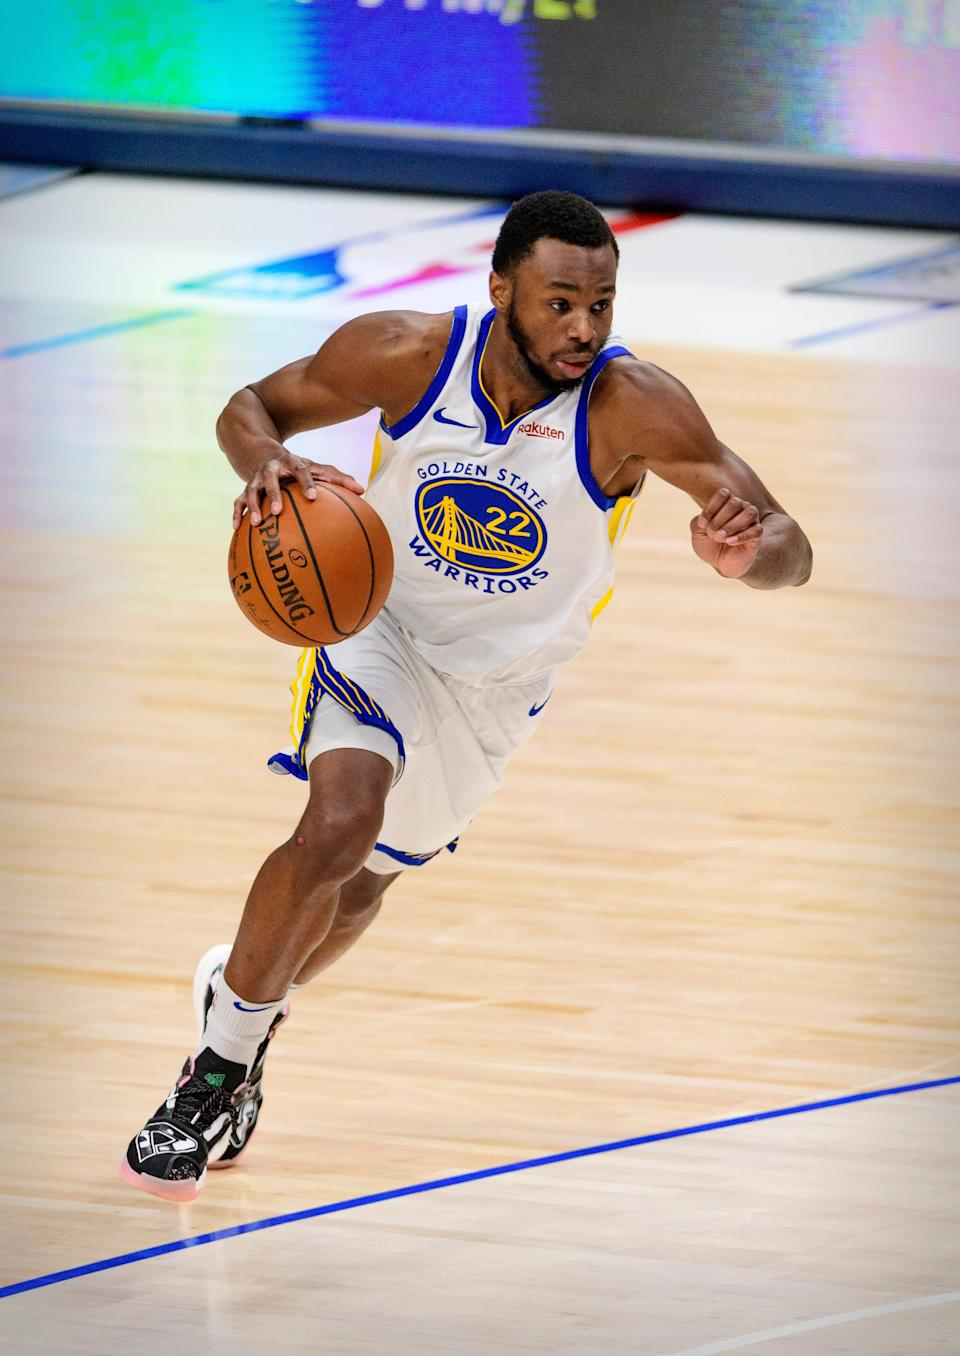 Andrew Wiggins remains unvaccinated against COVID-19, which could impact his availability for the Warriors this season.